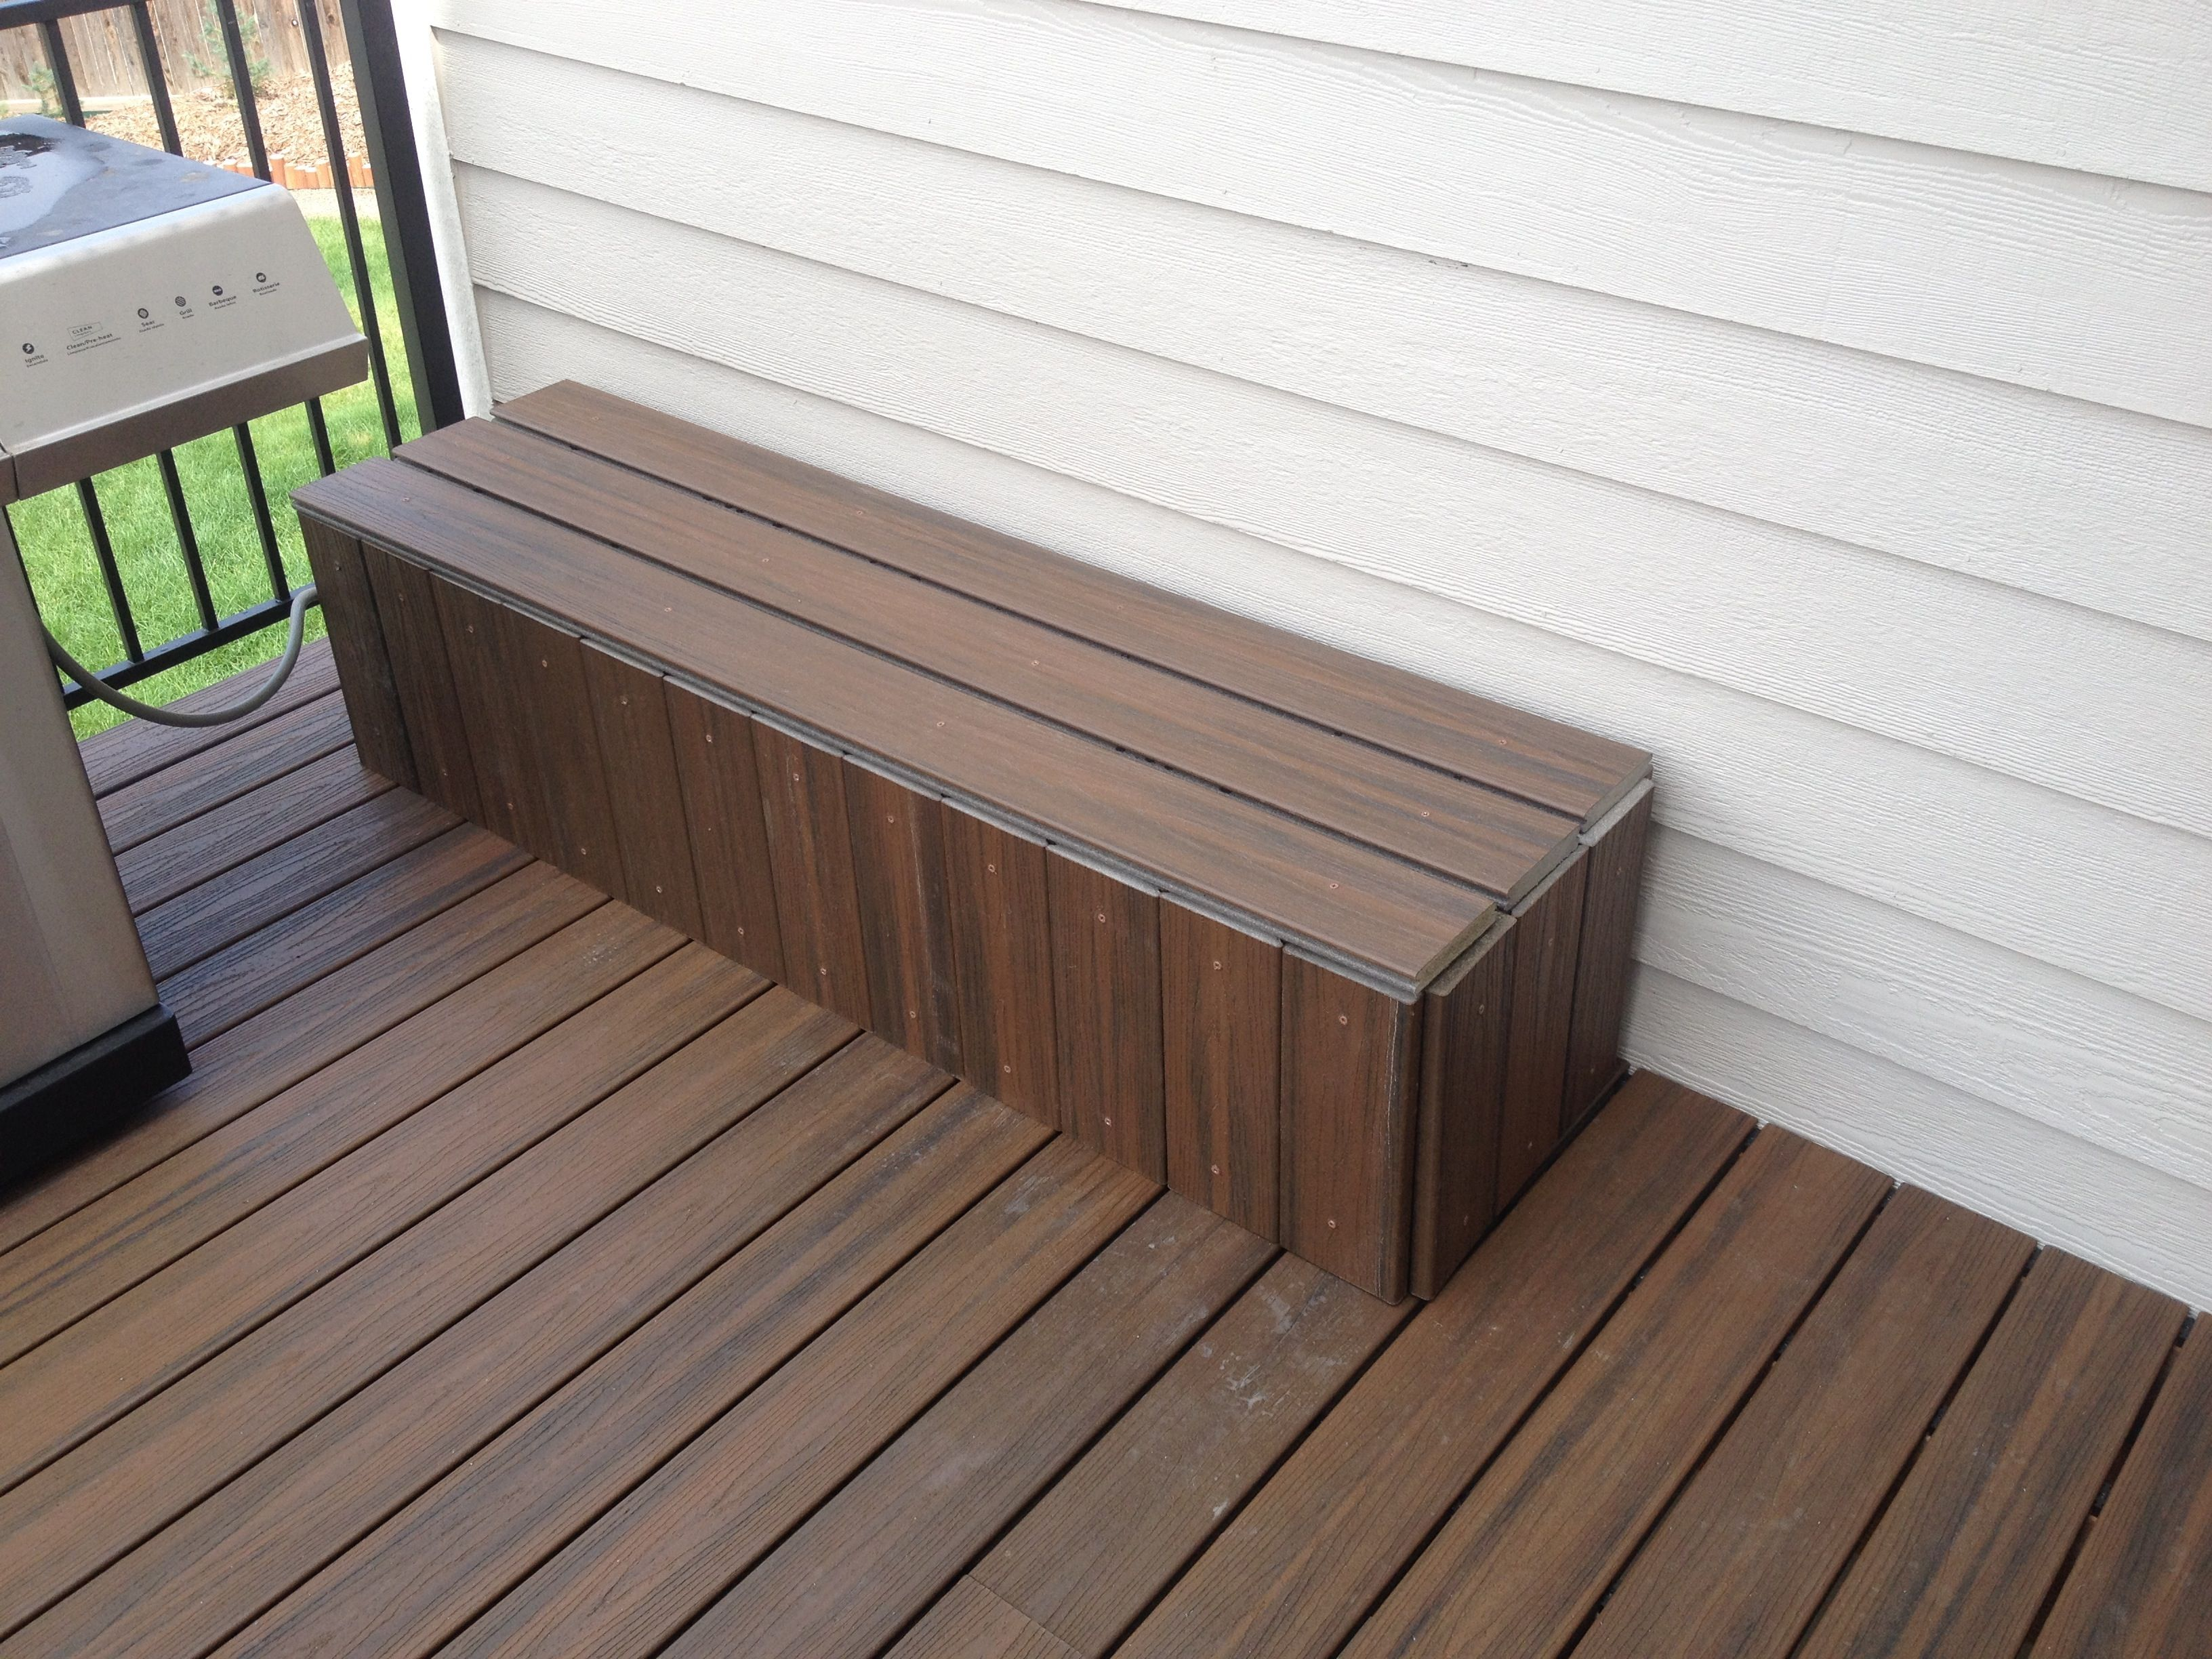 Extra Deck Trex Material Is Perfect To Build This Bench Waterproof Bin That Also Hides The Gas Line For The Trex Deck Waterproof Patio Storage Trex Material